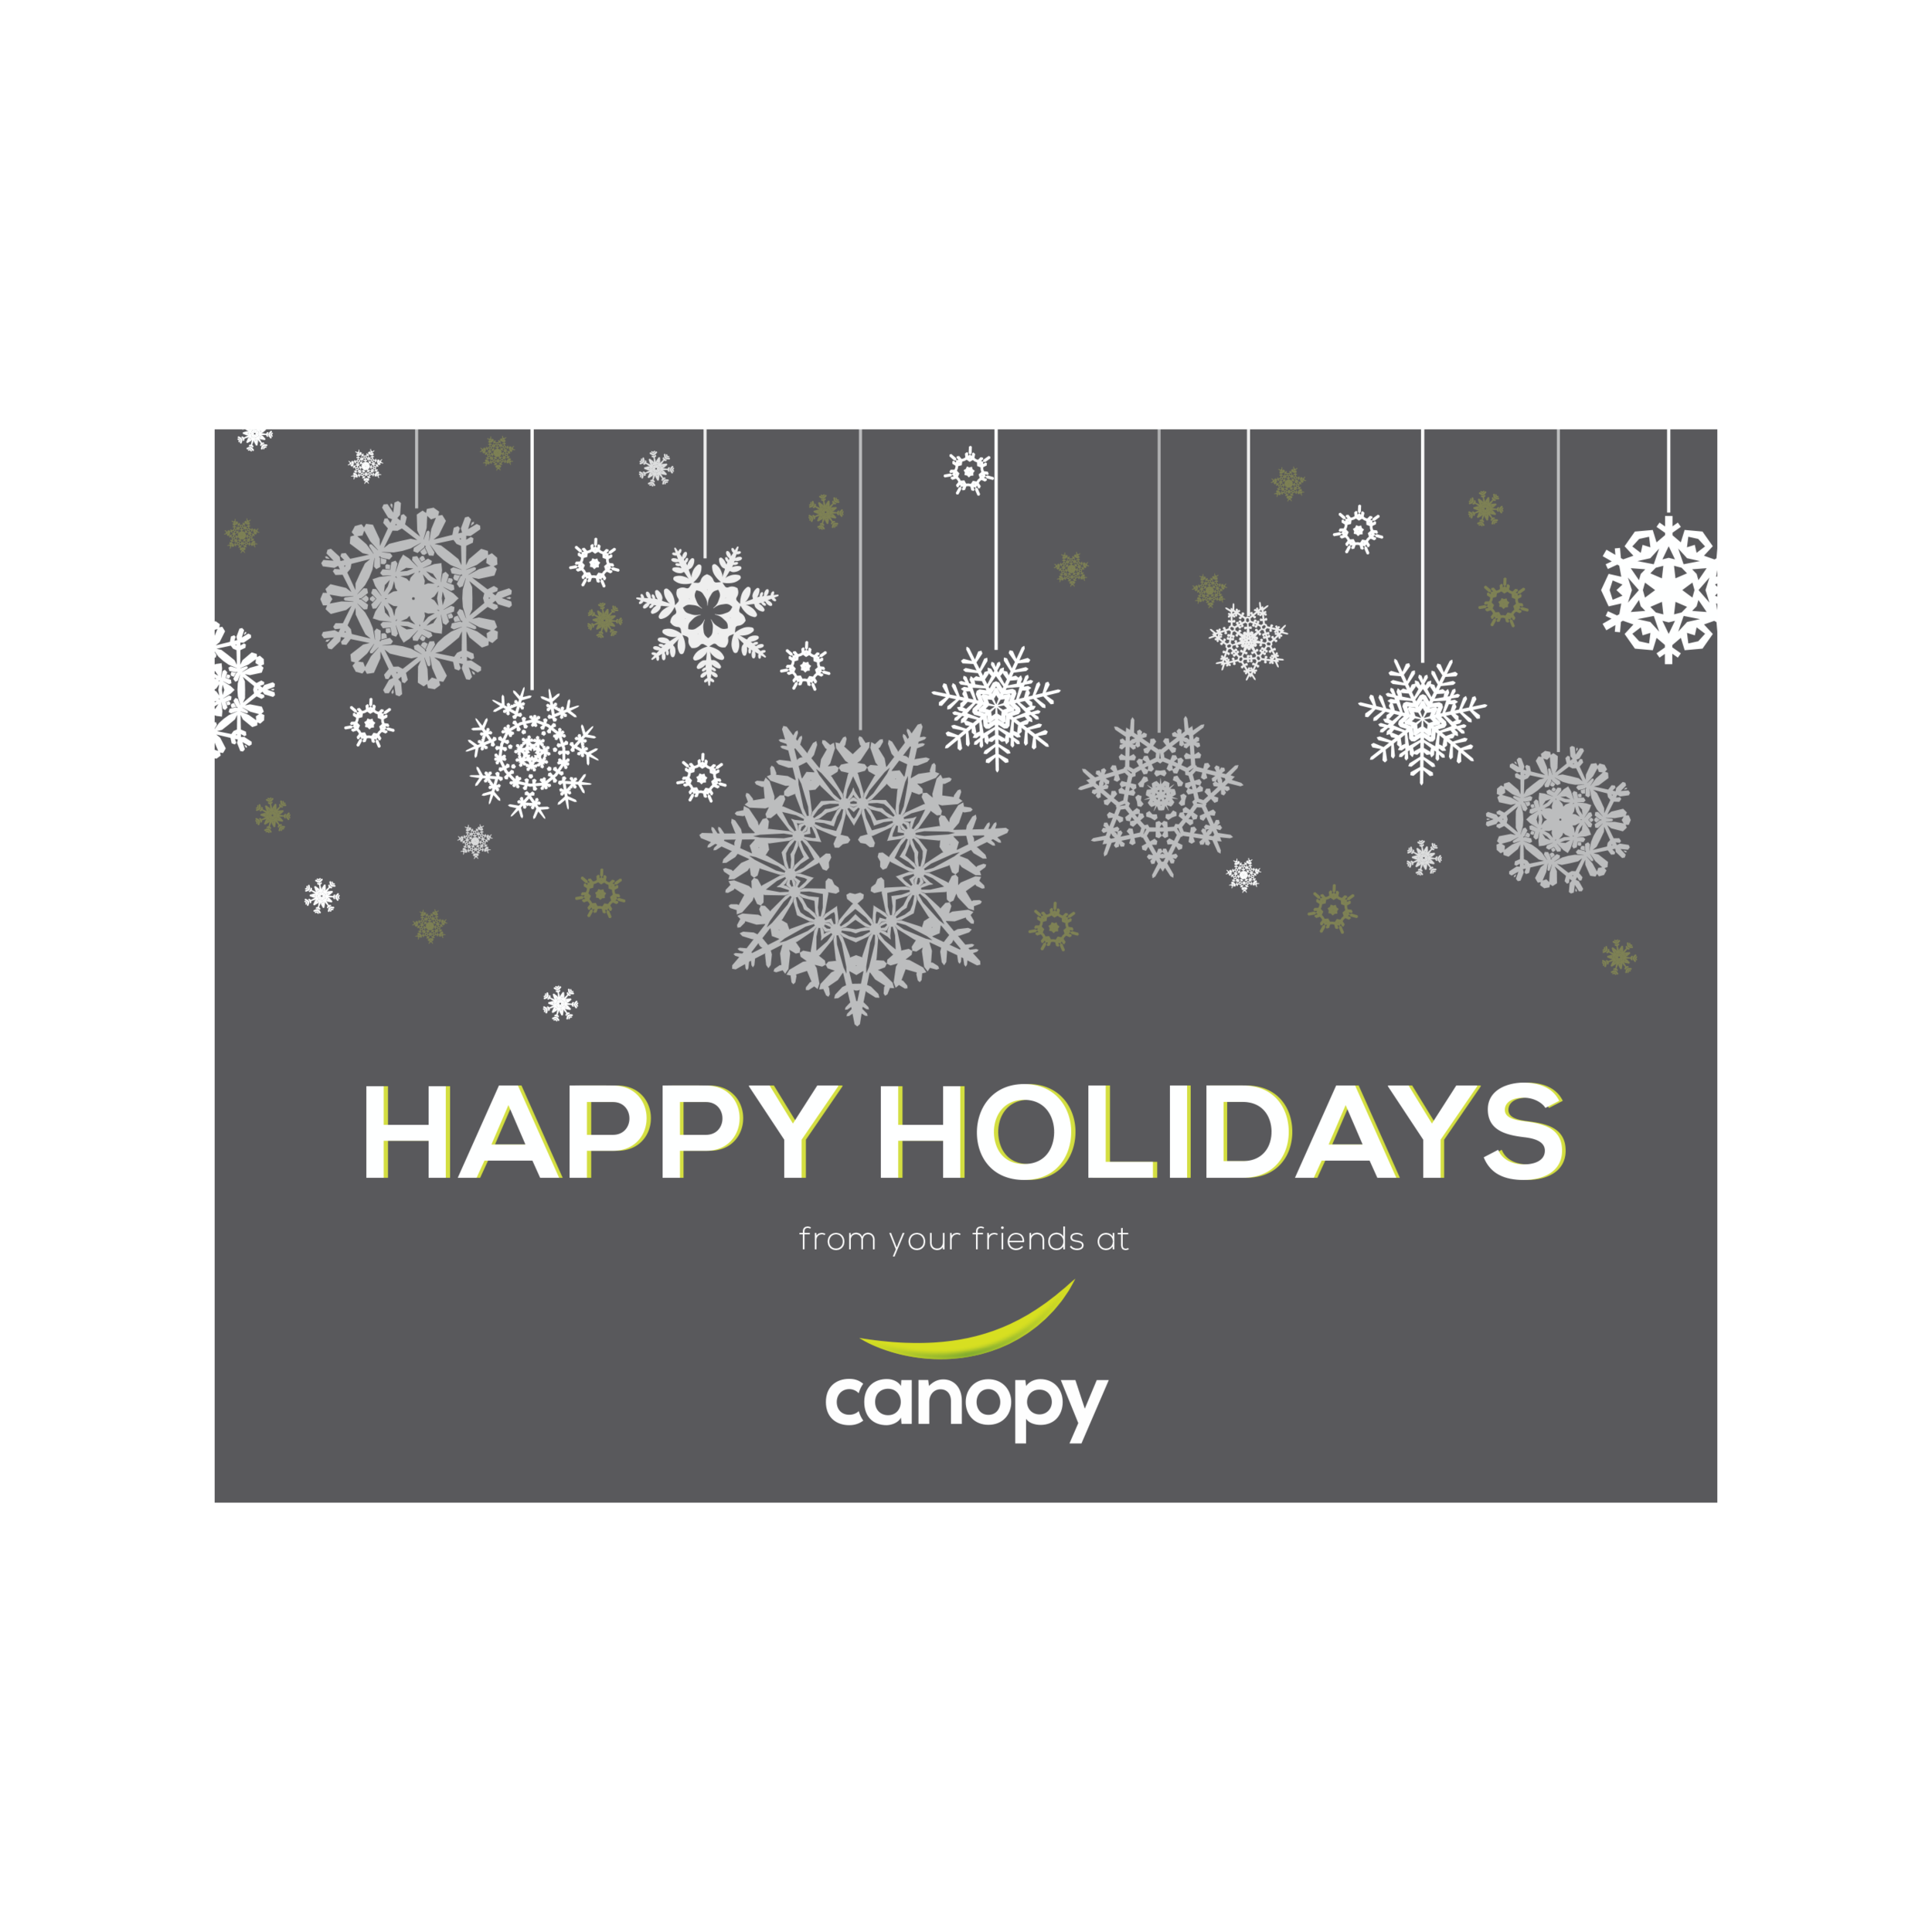 Canopy-HolidayCard-final-1.png